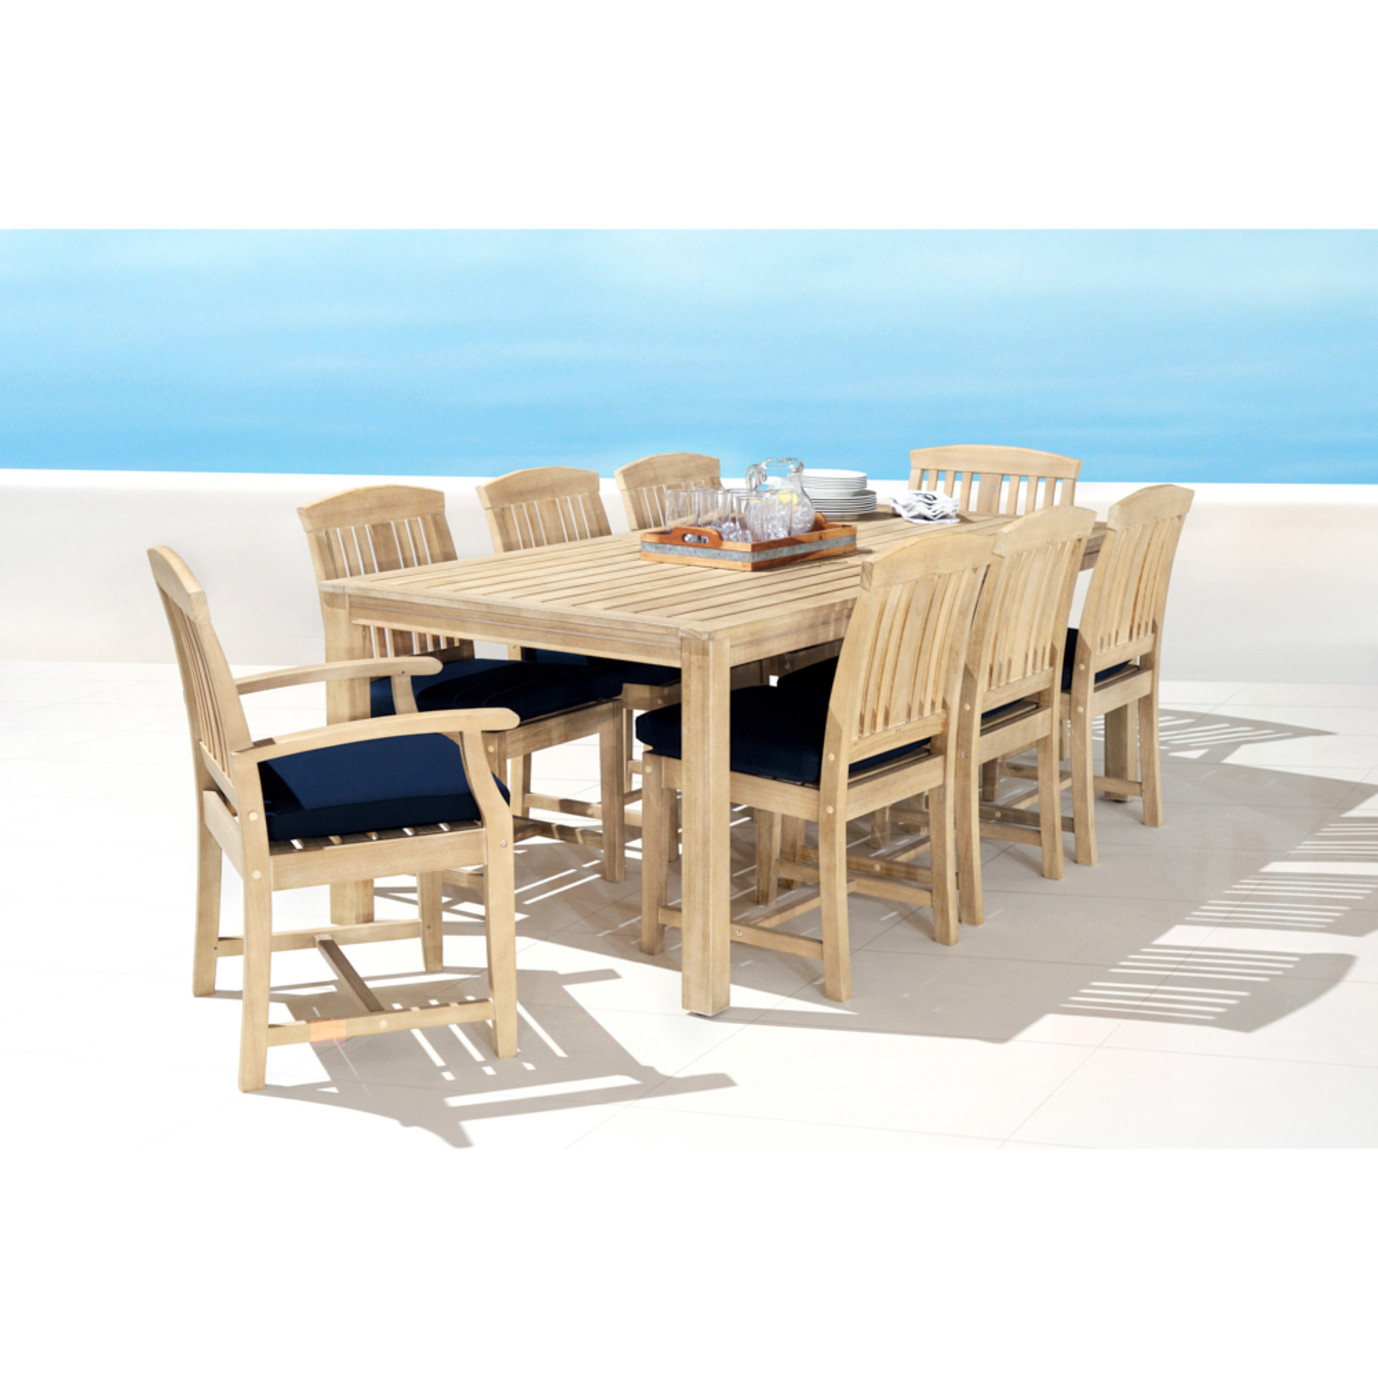 Kooper 9pc Outdoor Dining Set - Navy Blue